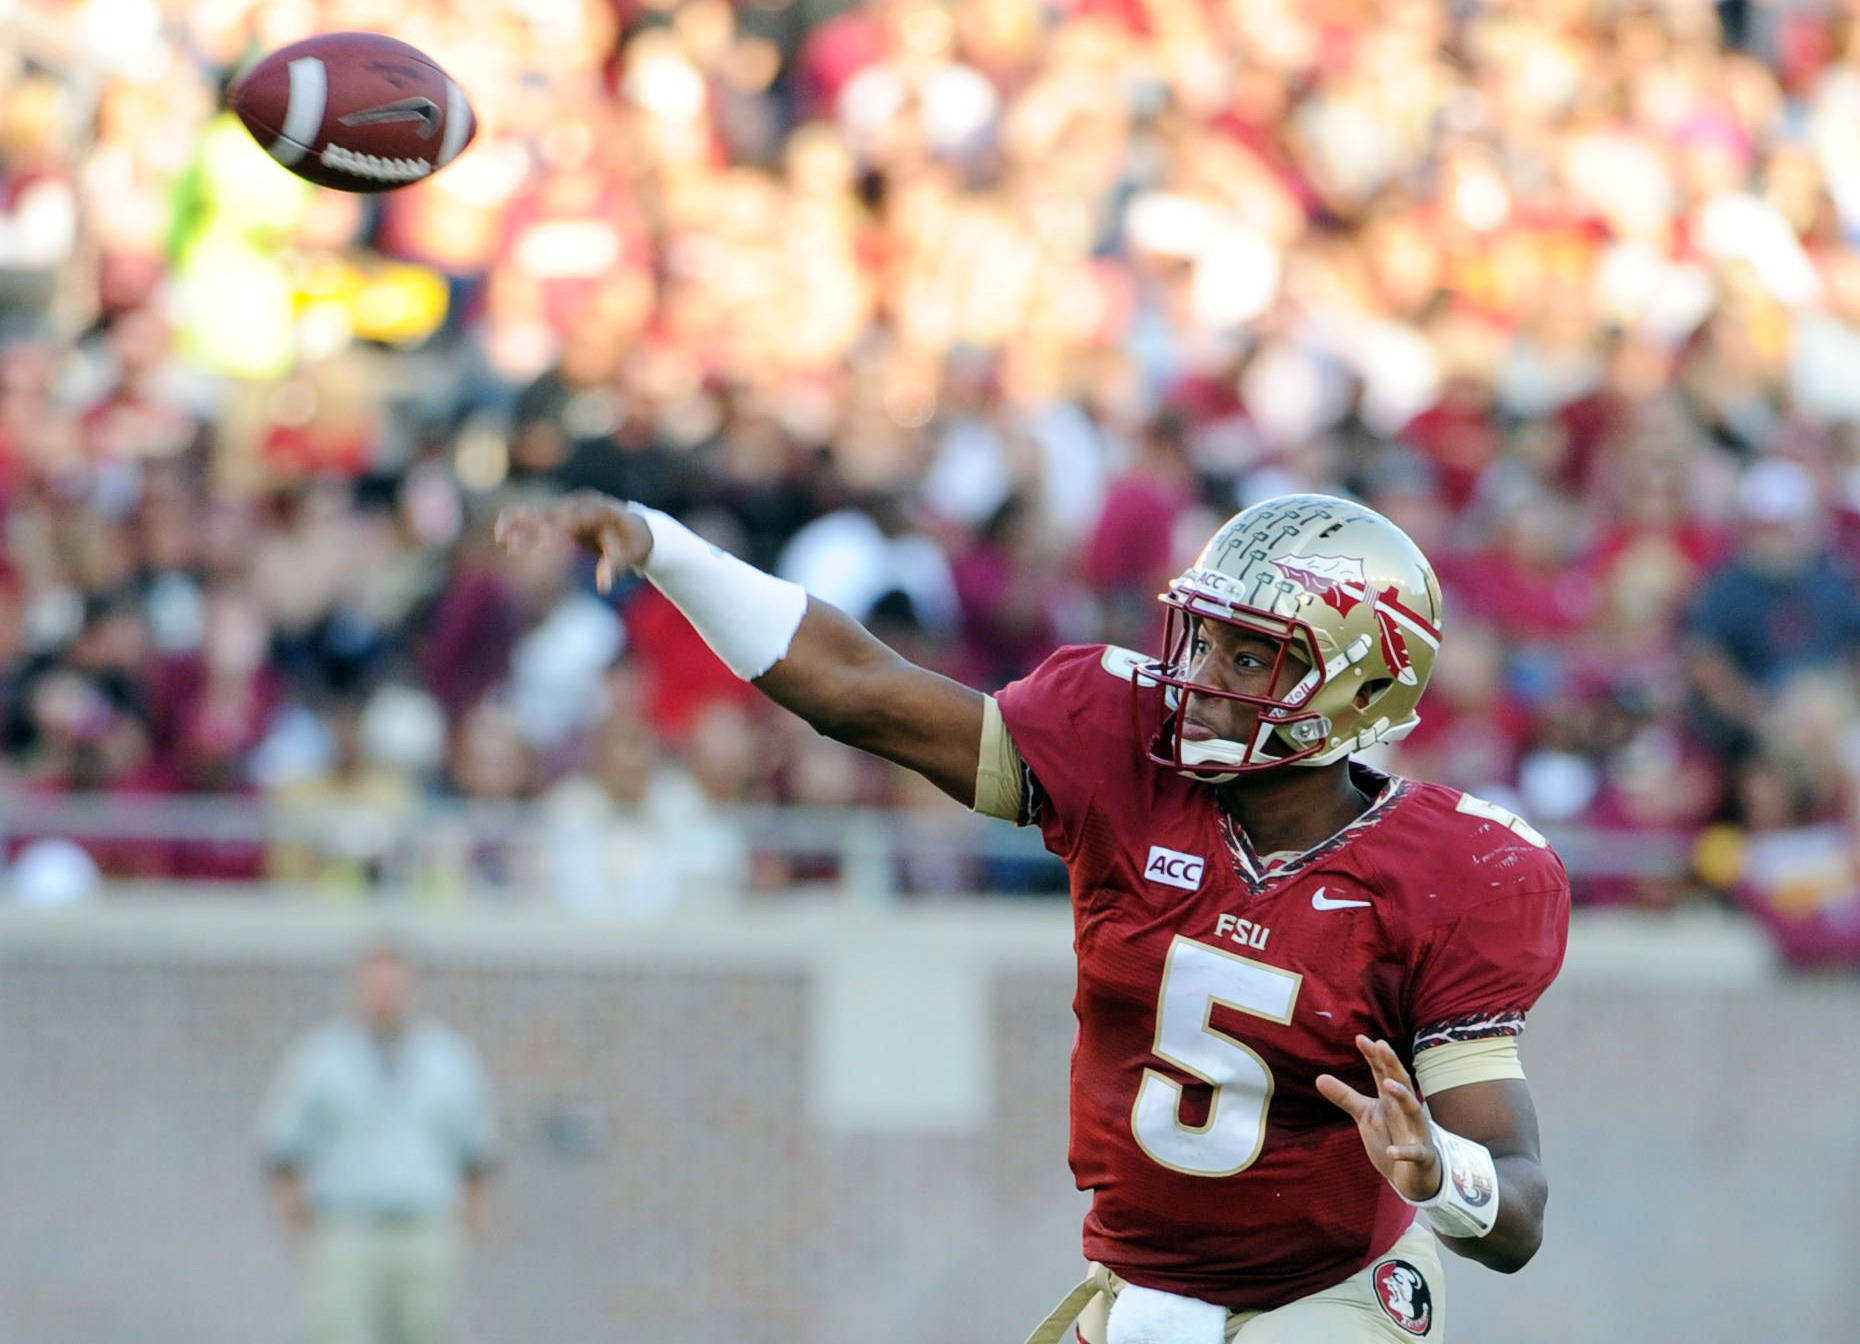 Jameis Winston (5) throws the ball during the game. Mandatory Credit: Melina Vastola-USA TODAY Sports